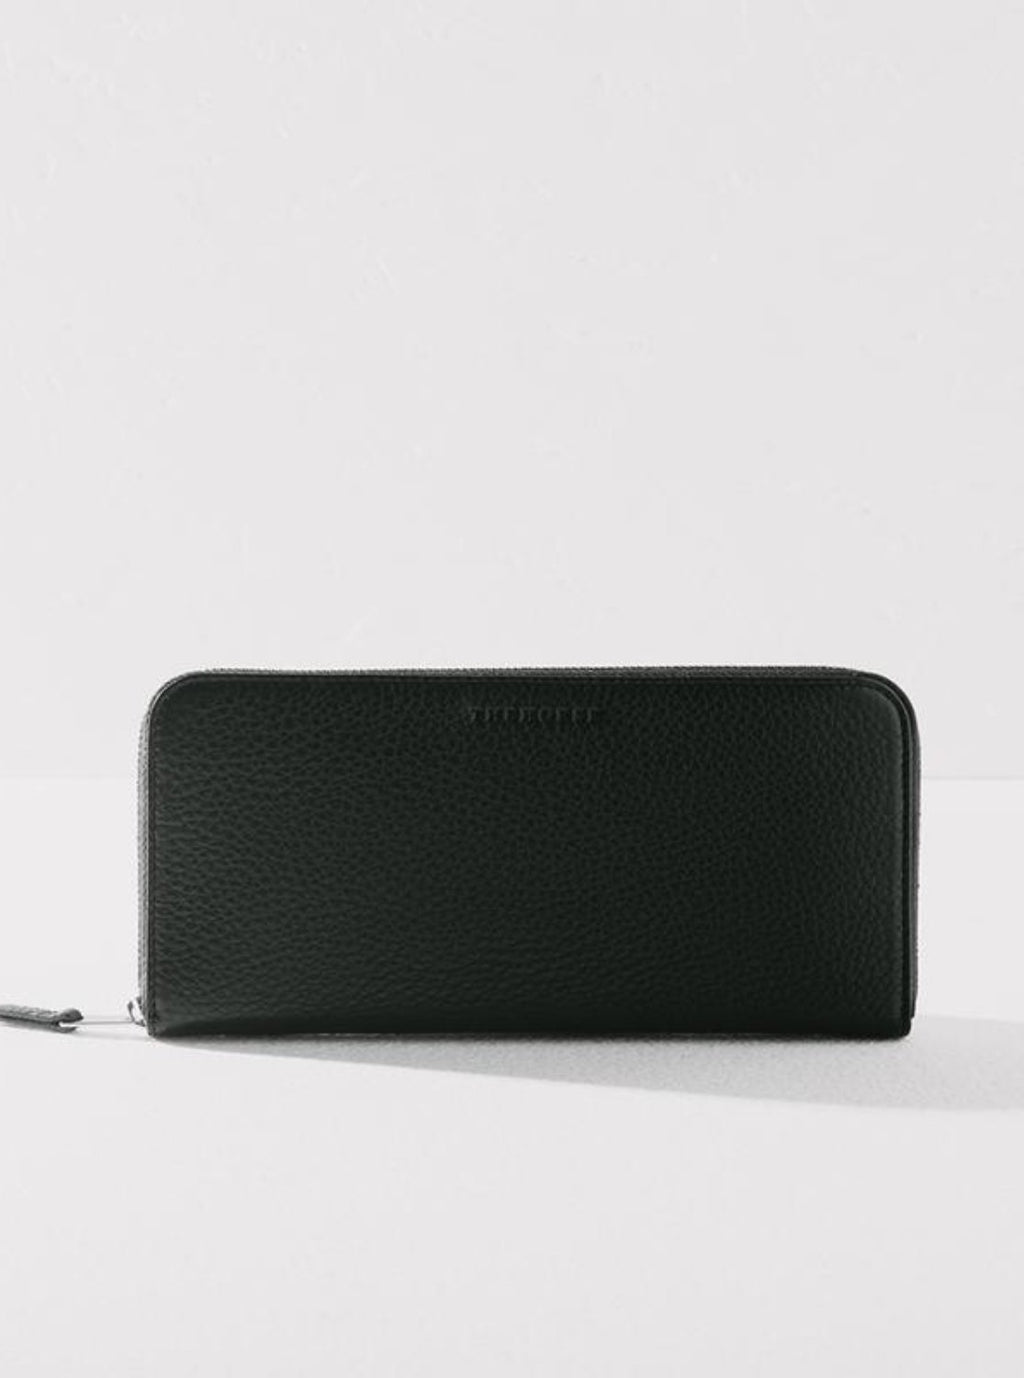 The Horse Slimline Wallet - Black